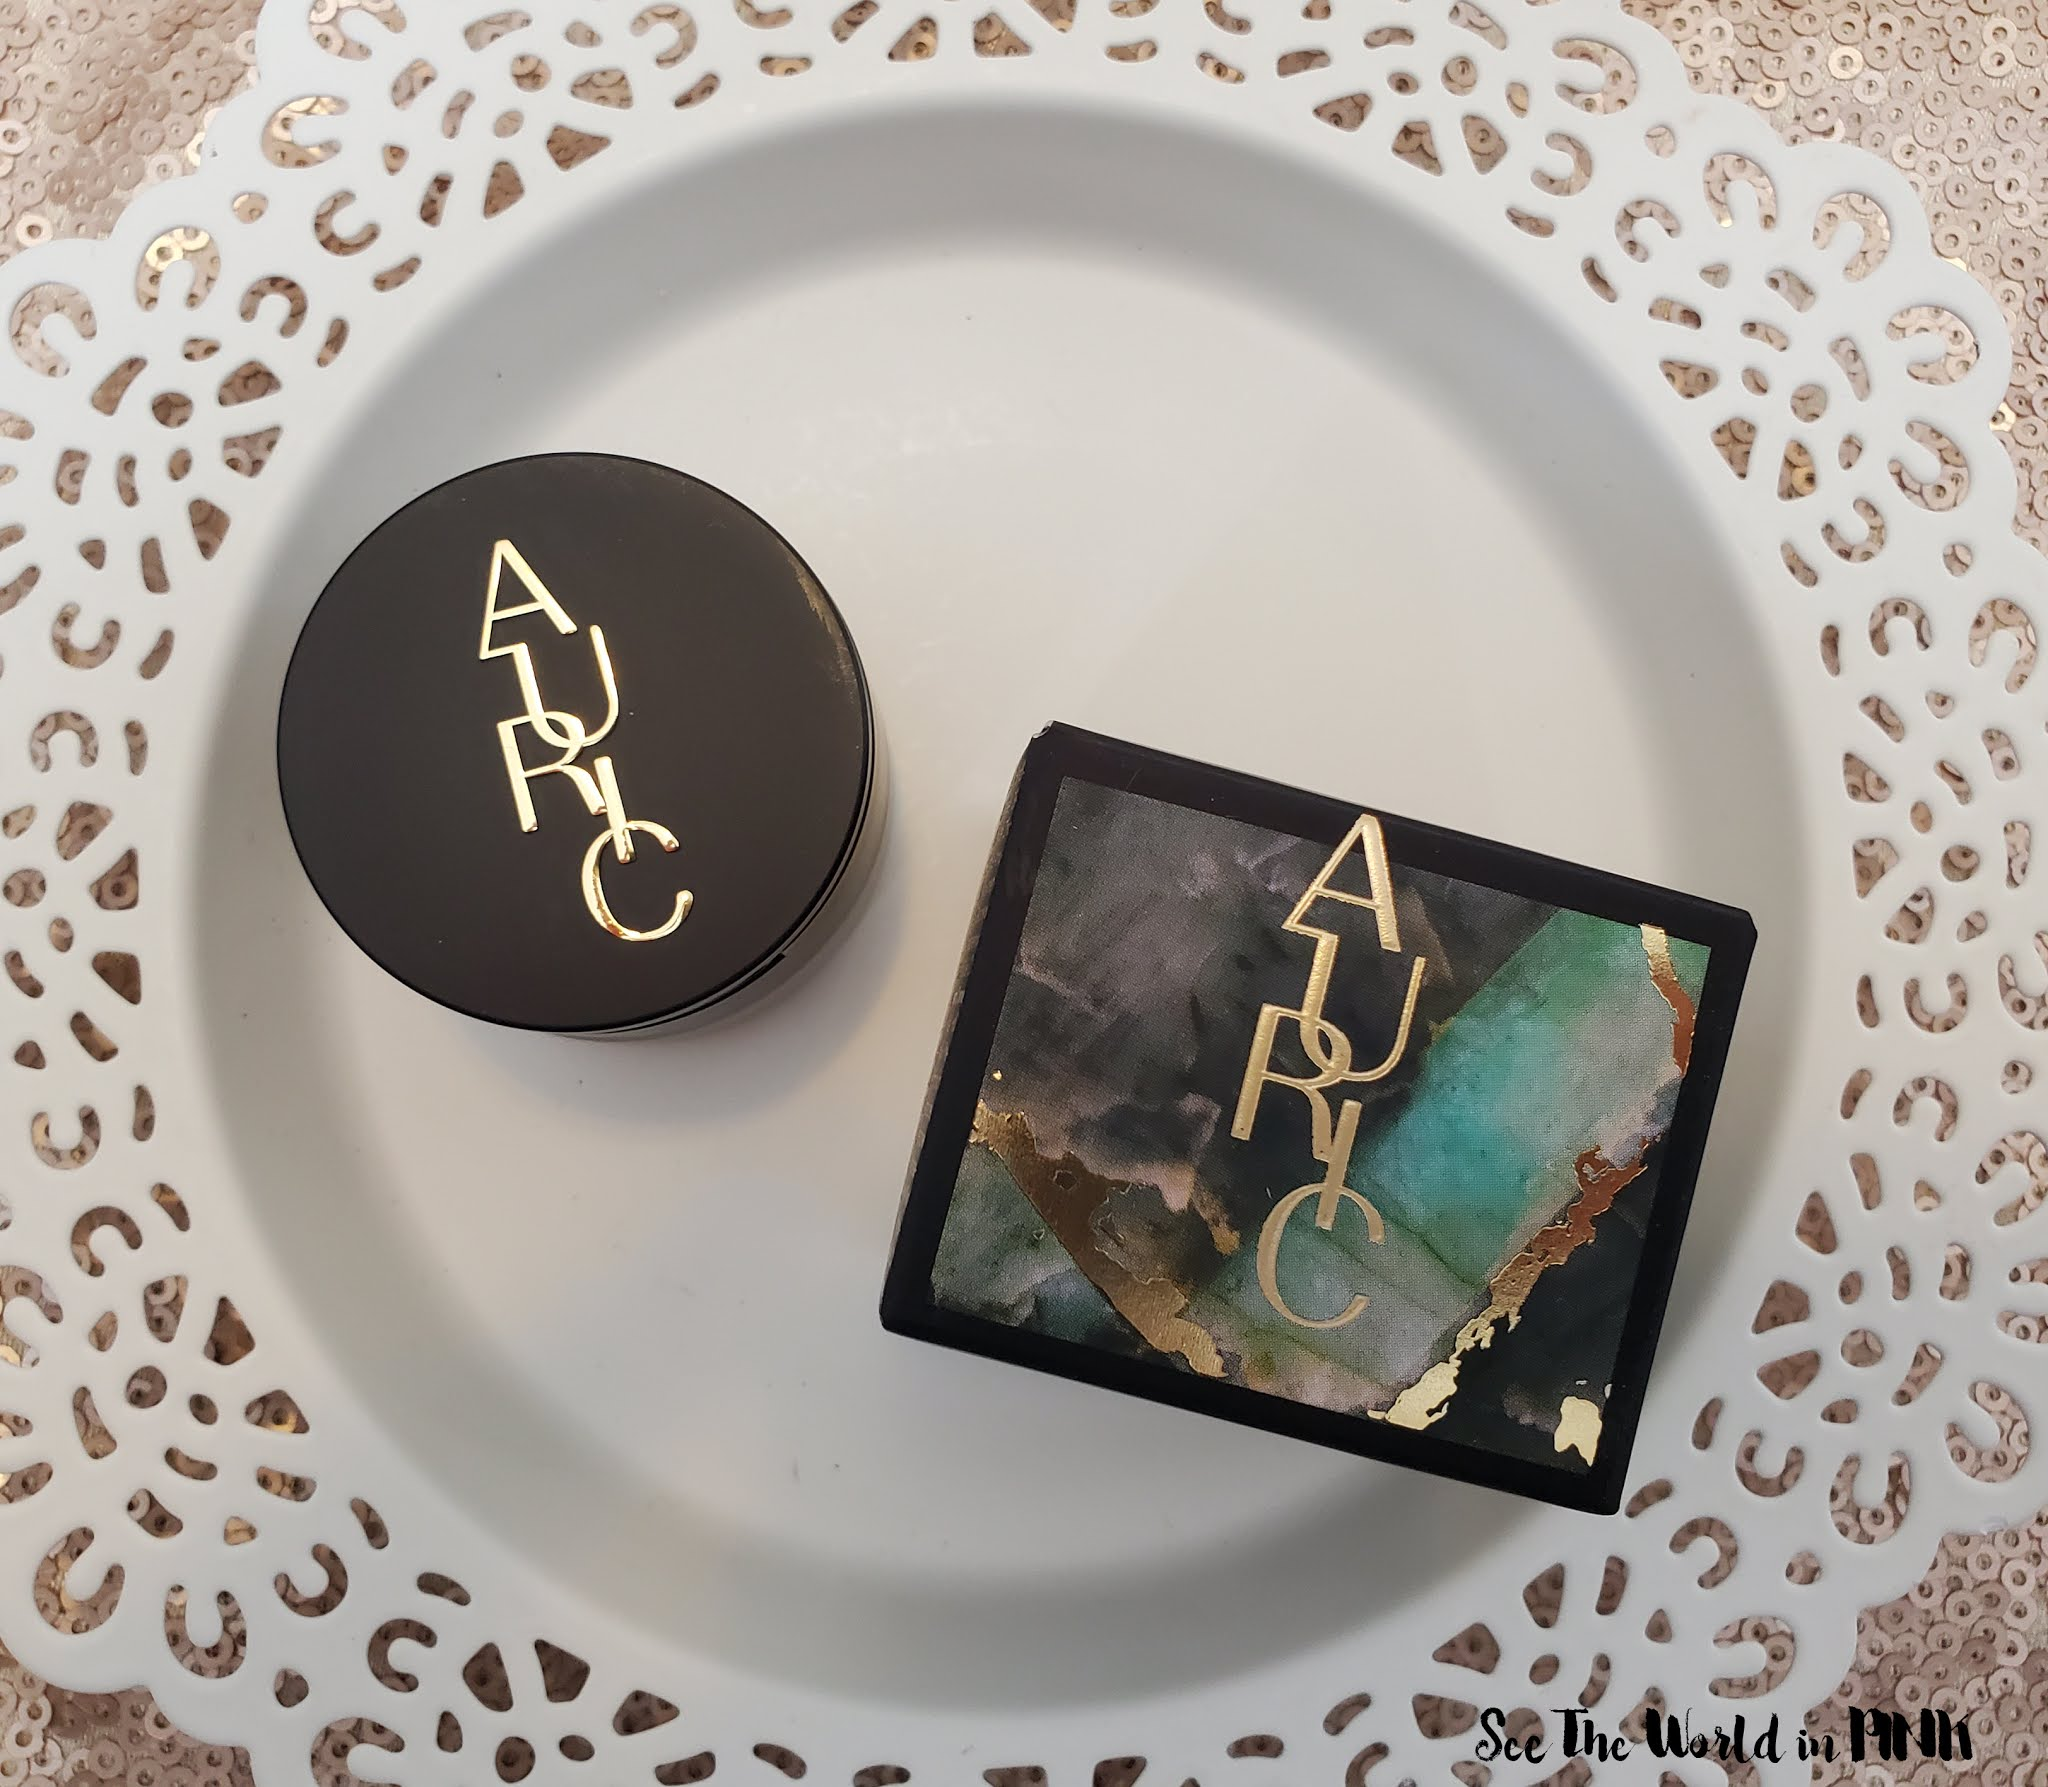 Auric Cosmetics by Samantha Ravndahl - Glow Lust in Selenite and Smoke Reflect in Temper Review and Swatches